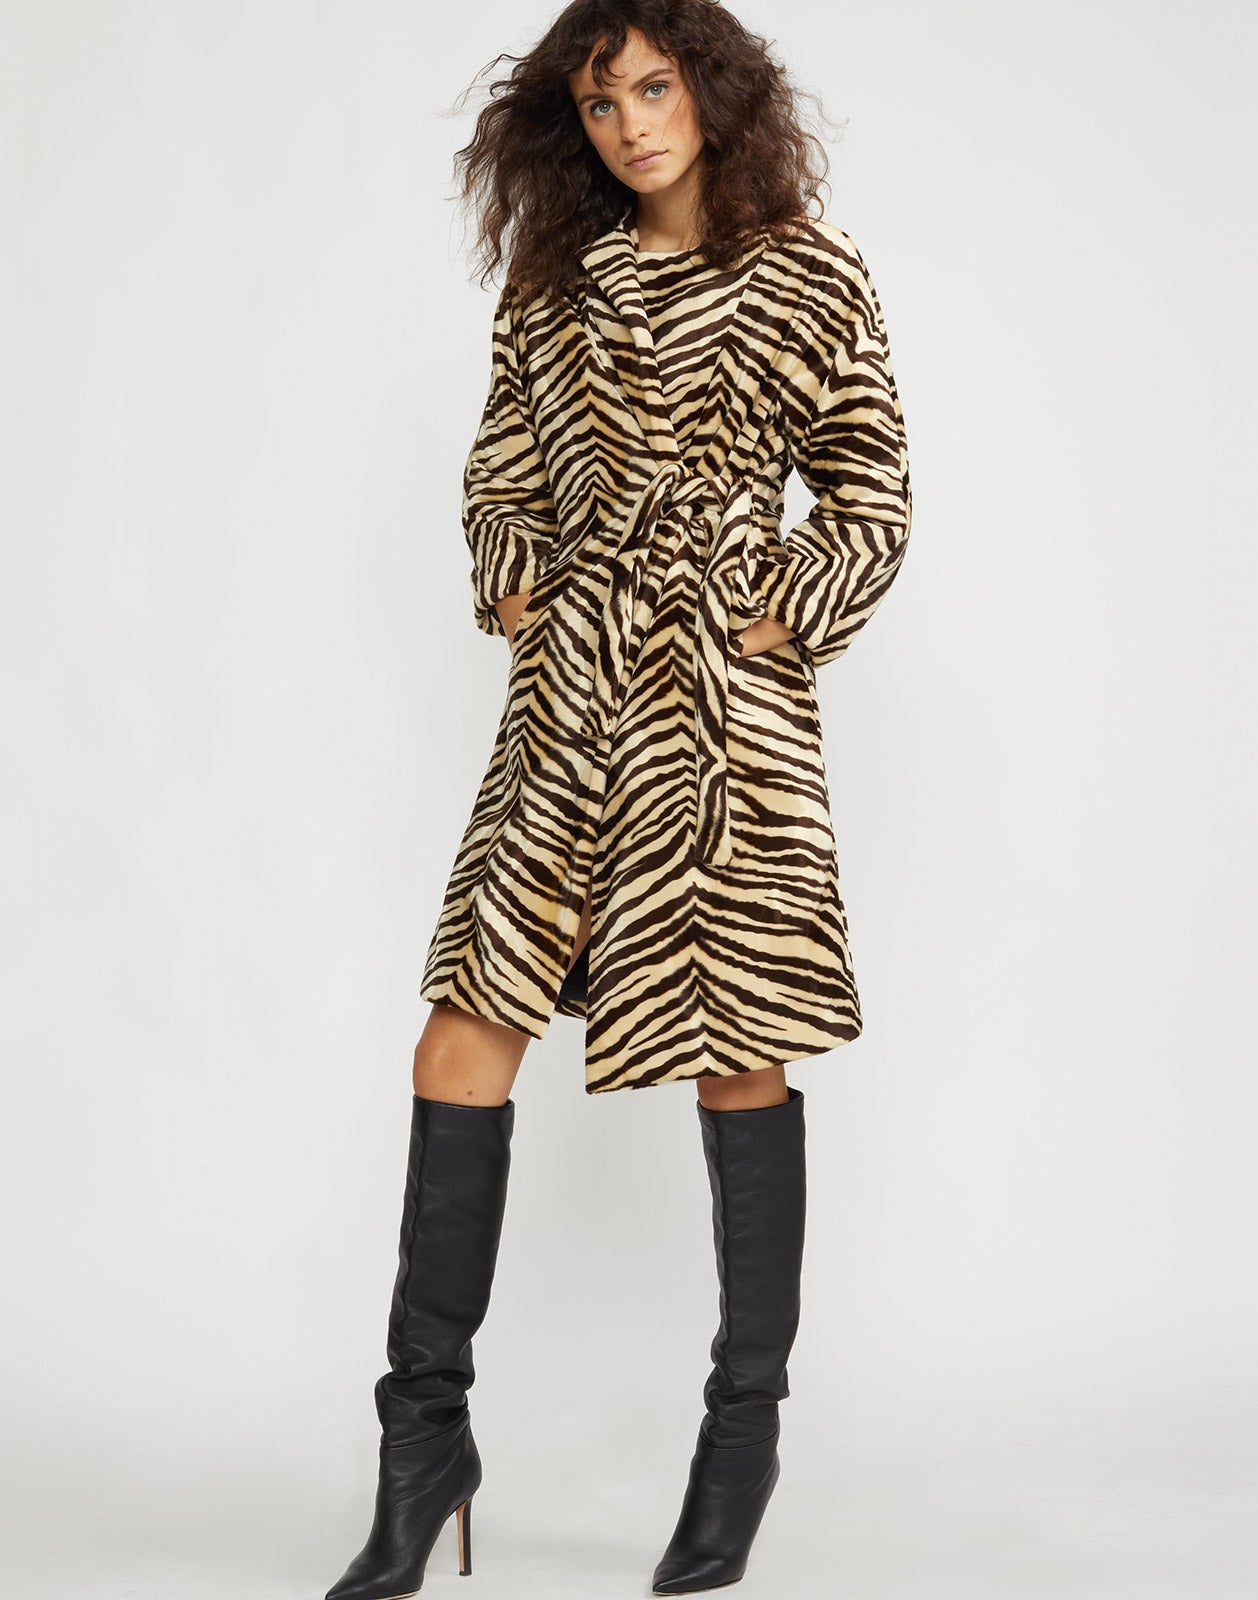 Front view of the Zebra faux fur coat.